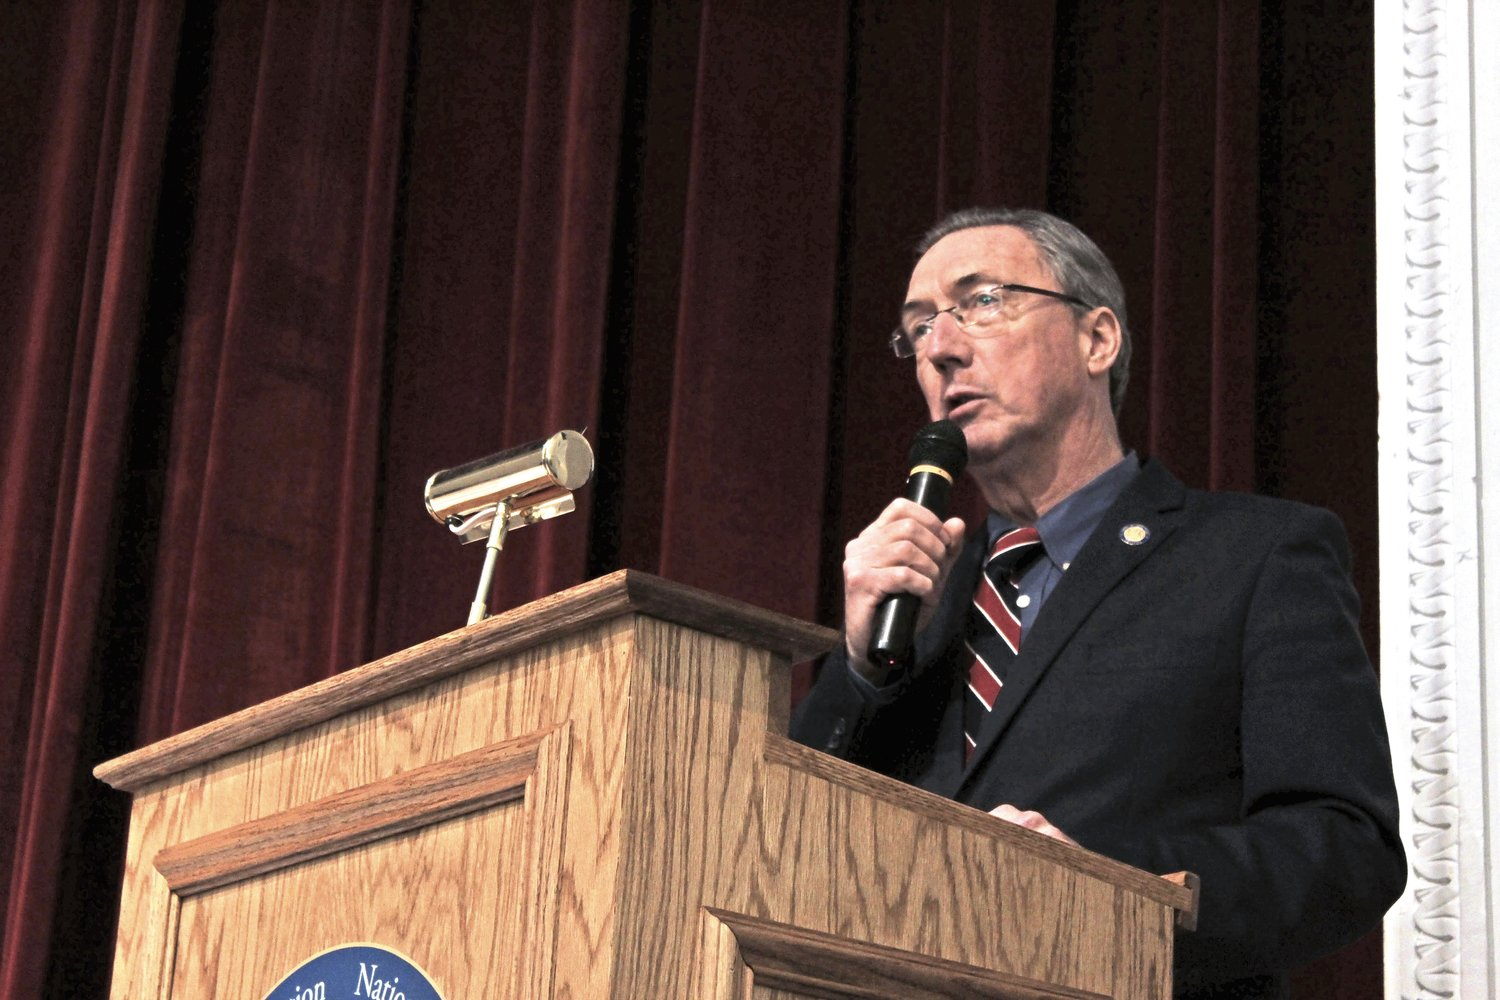 State Sen. Jim Gaughran invited local, state and federal officials to the town hall to address the rate hikes that local residents have seen under New York American Water.